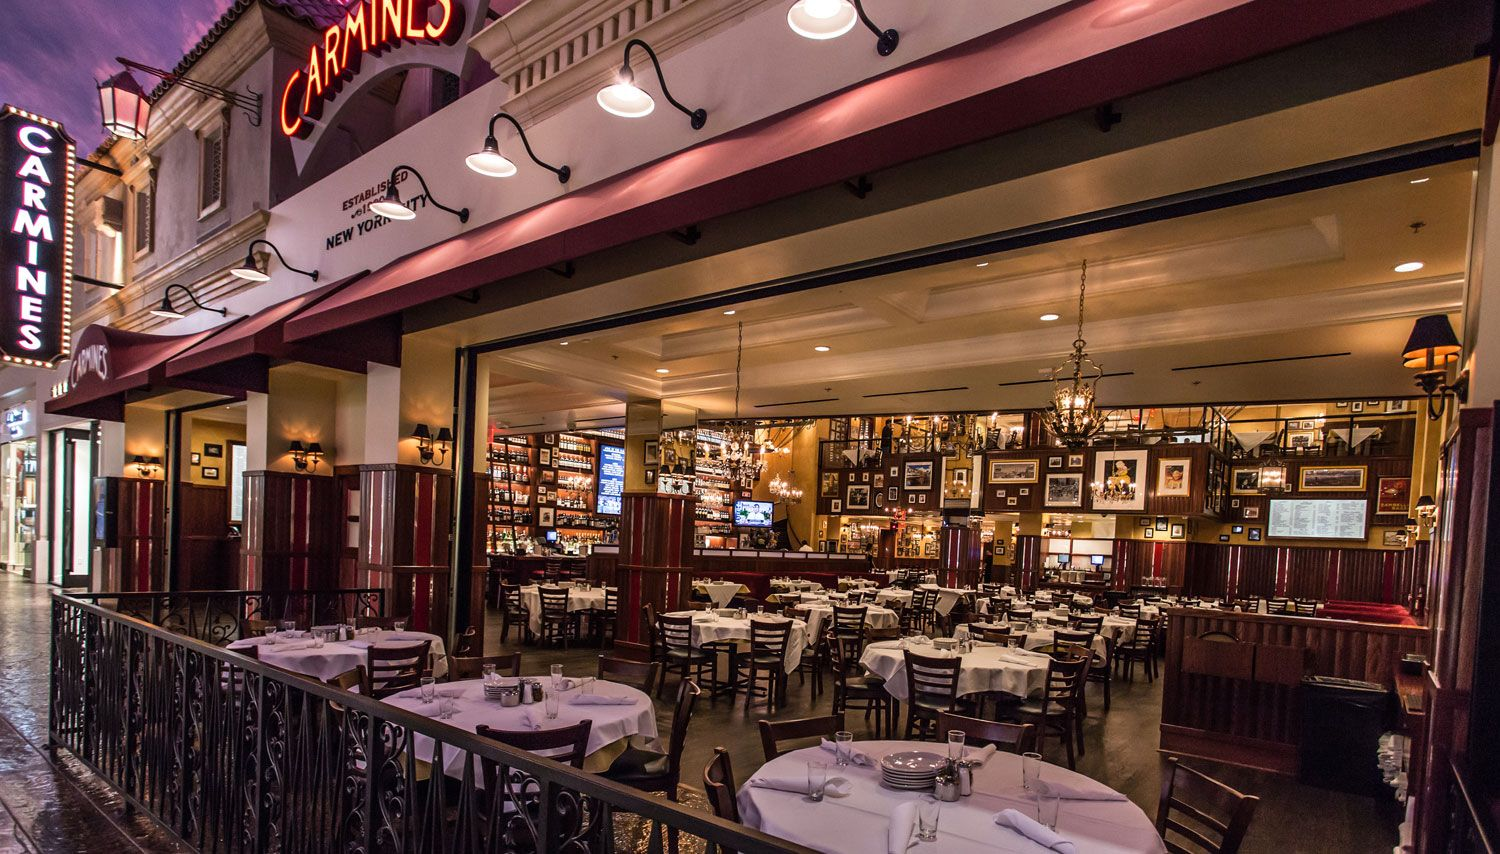 Carmine S Is A Family Style Italian Restaurant In The Forum